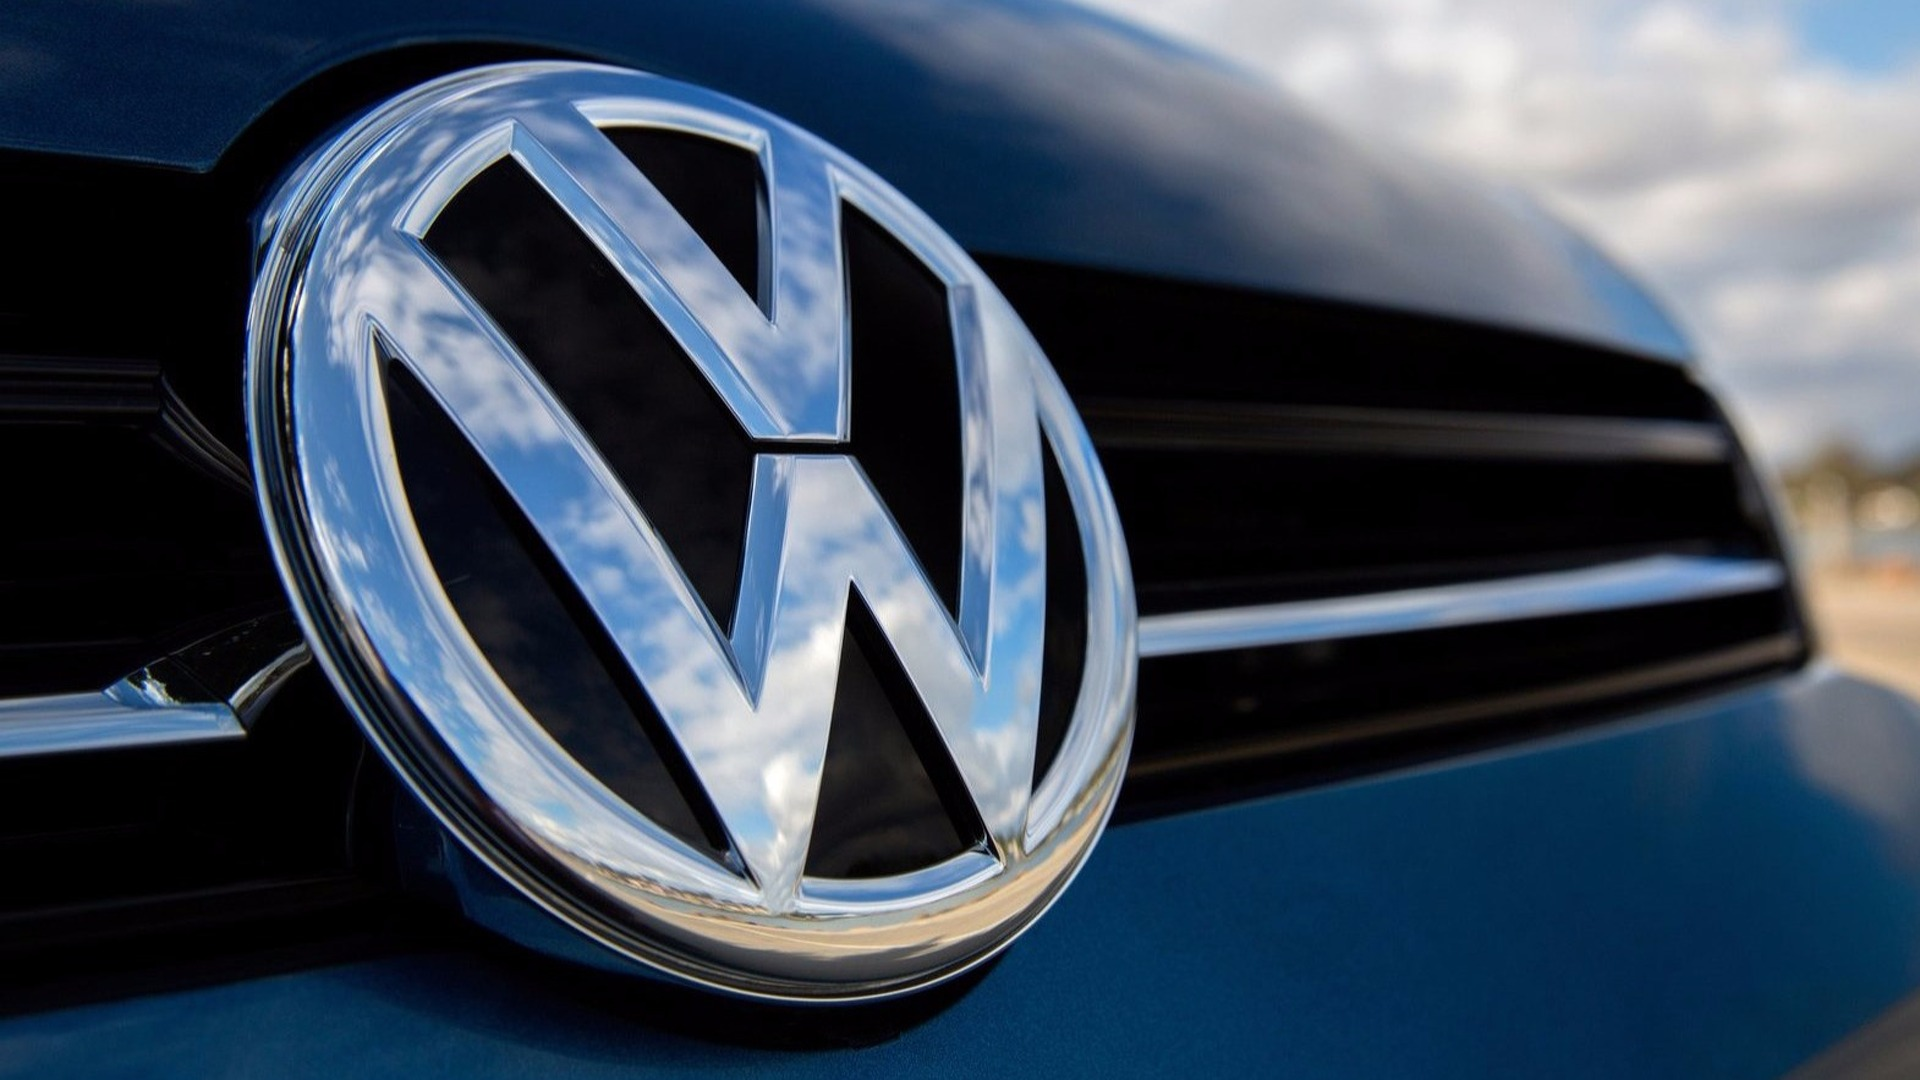 VW to start shipping cars on LNG-fueled vessels